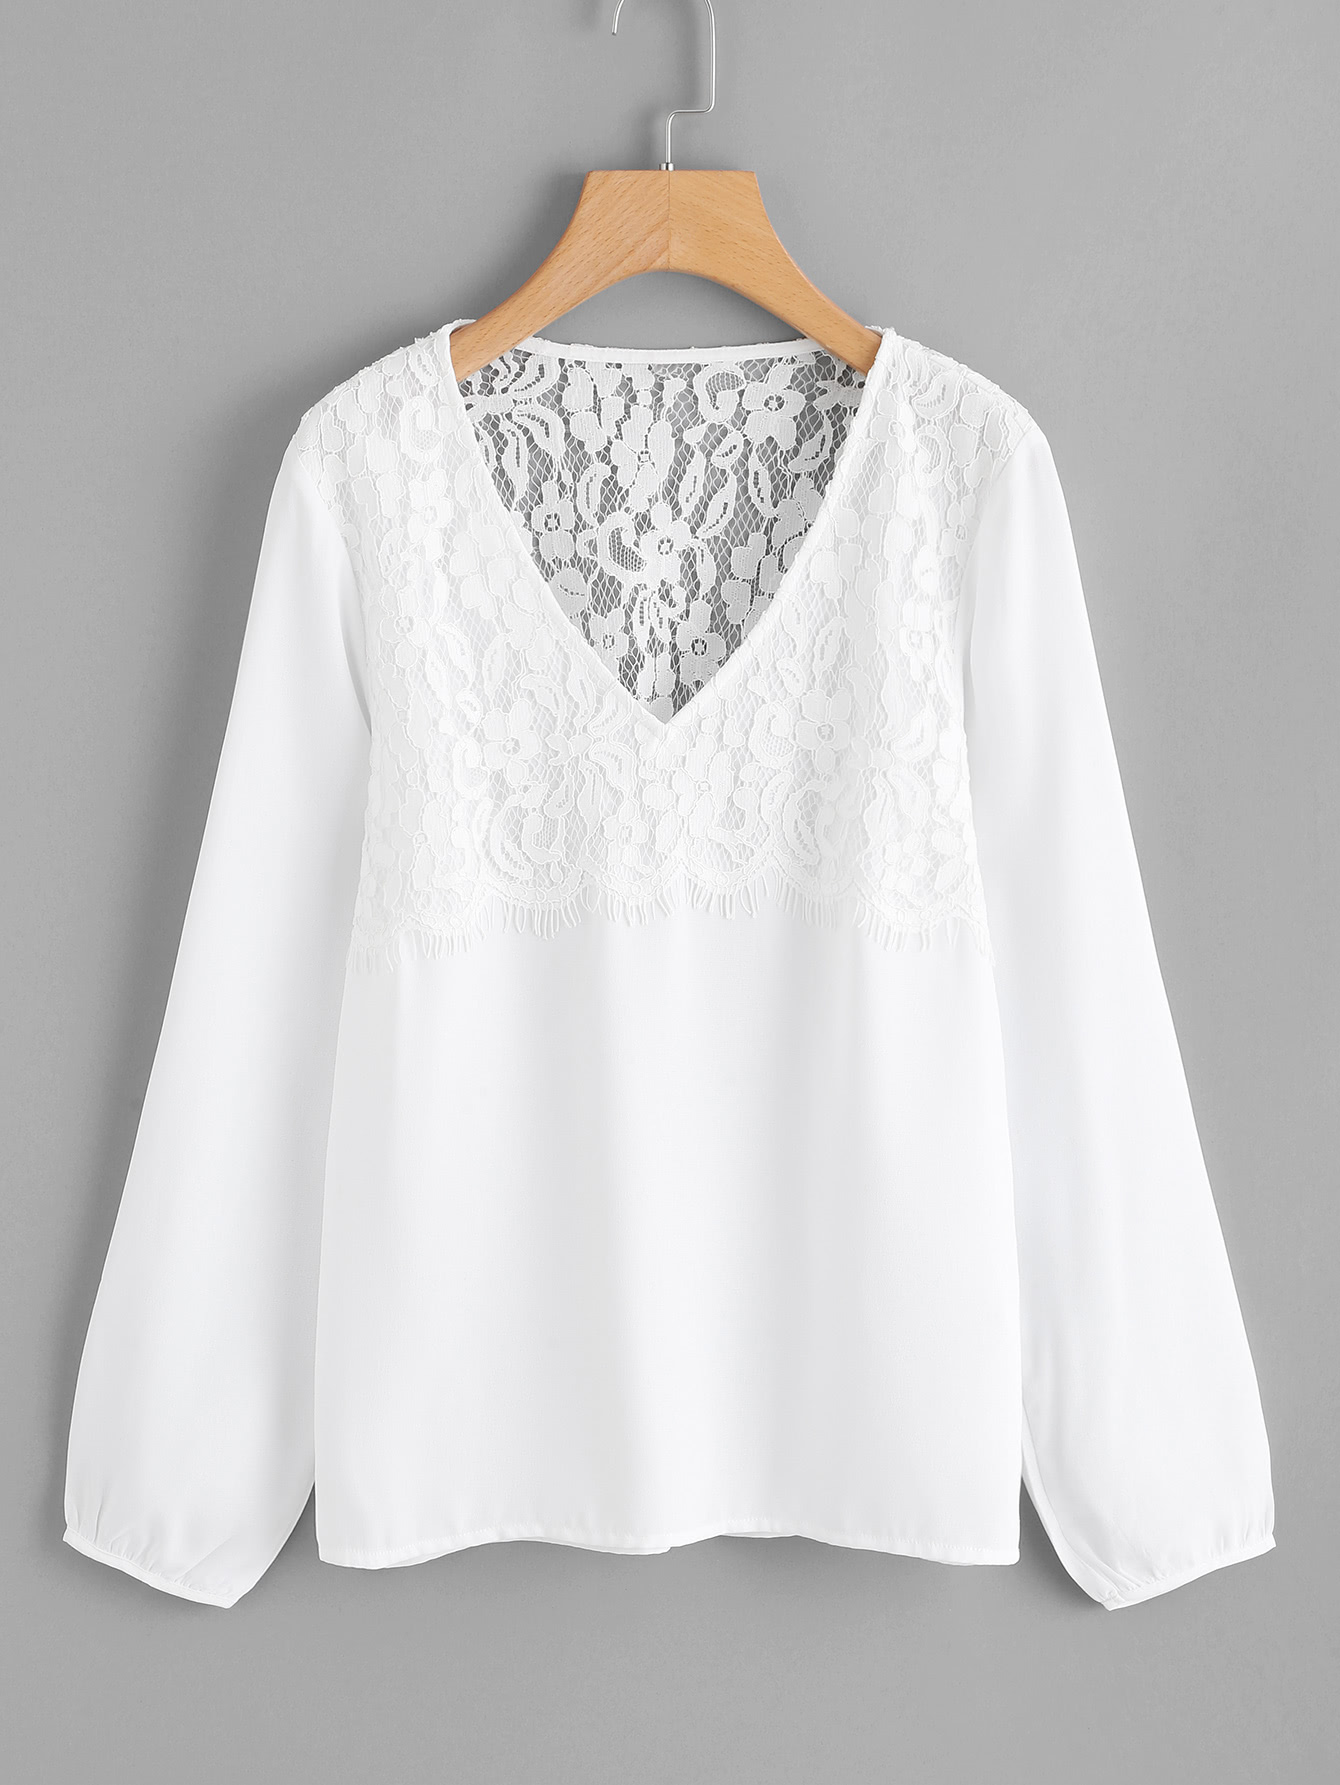 Floral Lace Panel Top lace panel yoke top